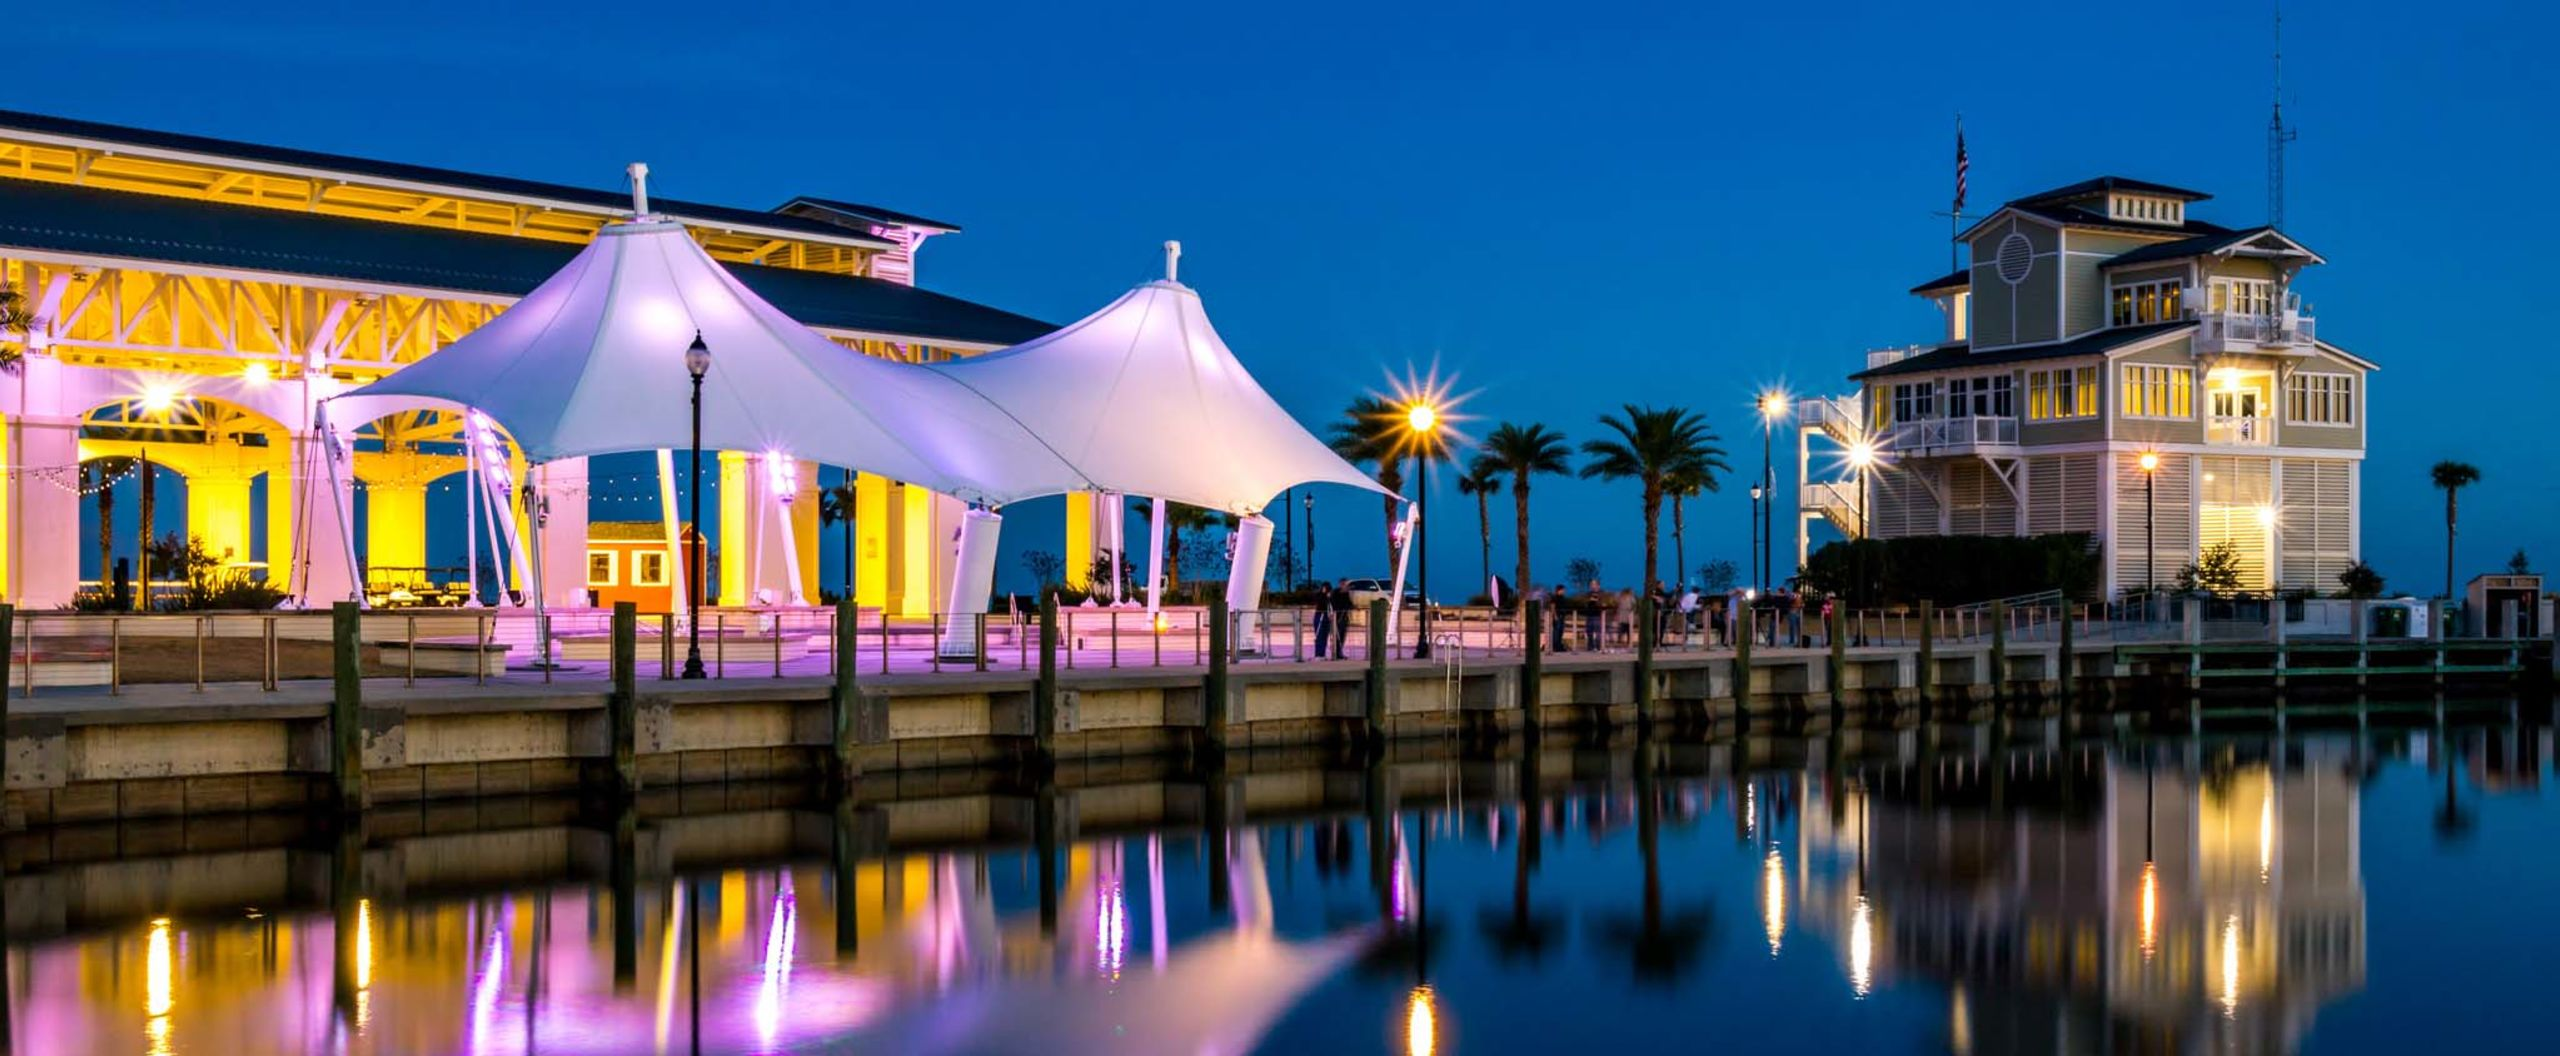 Gulfport Harbor by JA Sawyer Imaging